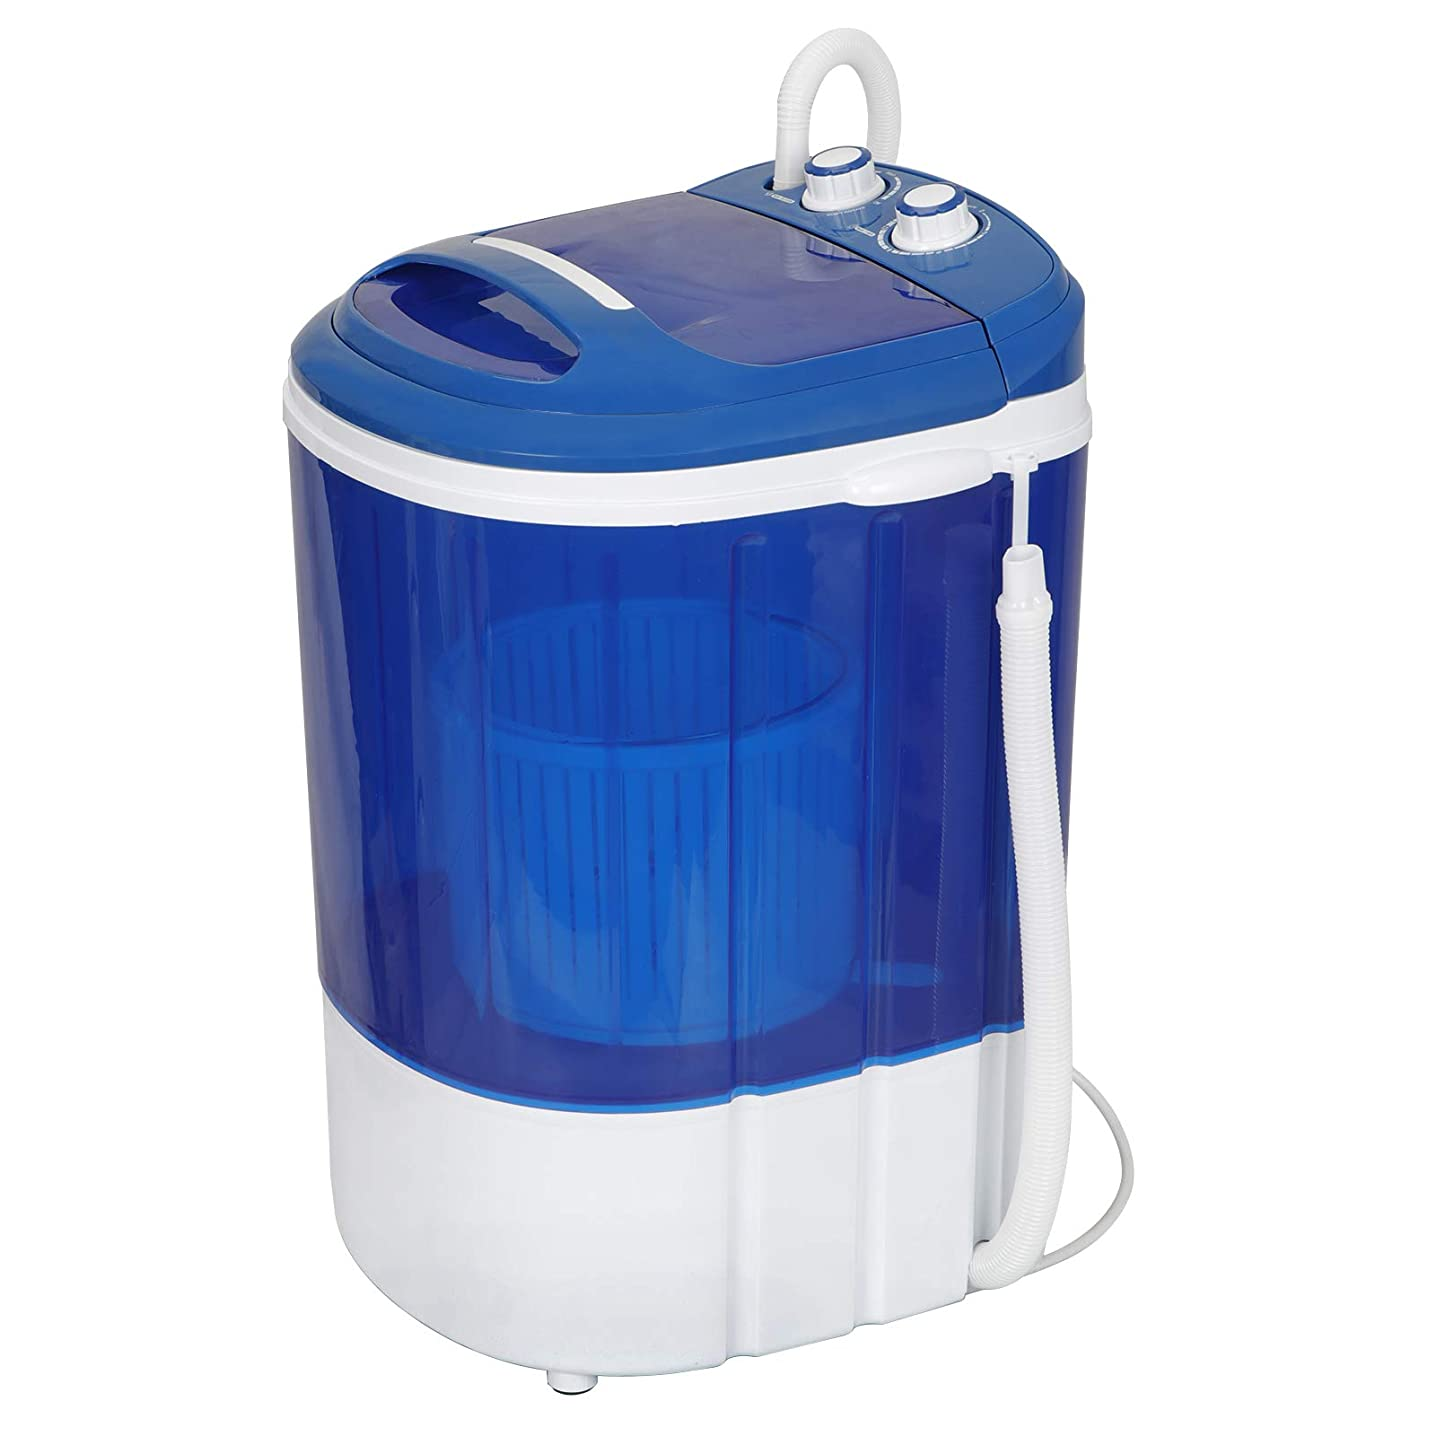 Mini Washing Machine, 9lbs Portable Washer for Compact Laundry Semi-Automatic Compact Washer & Spinner